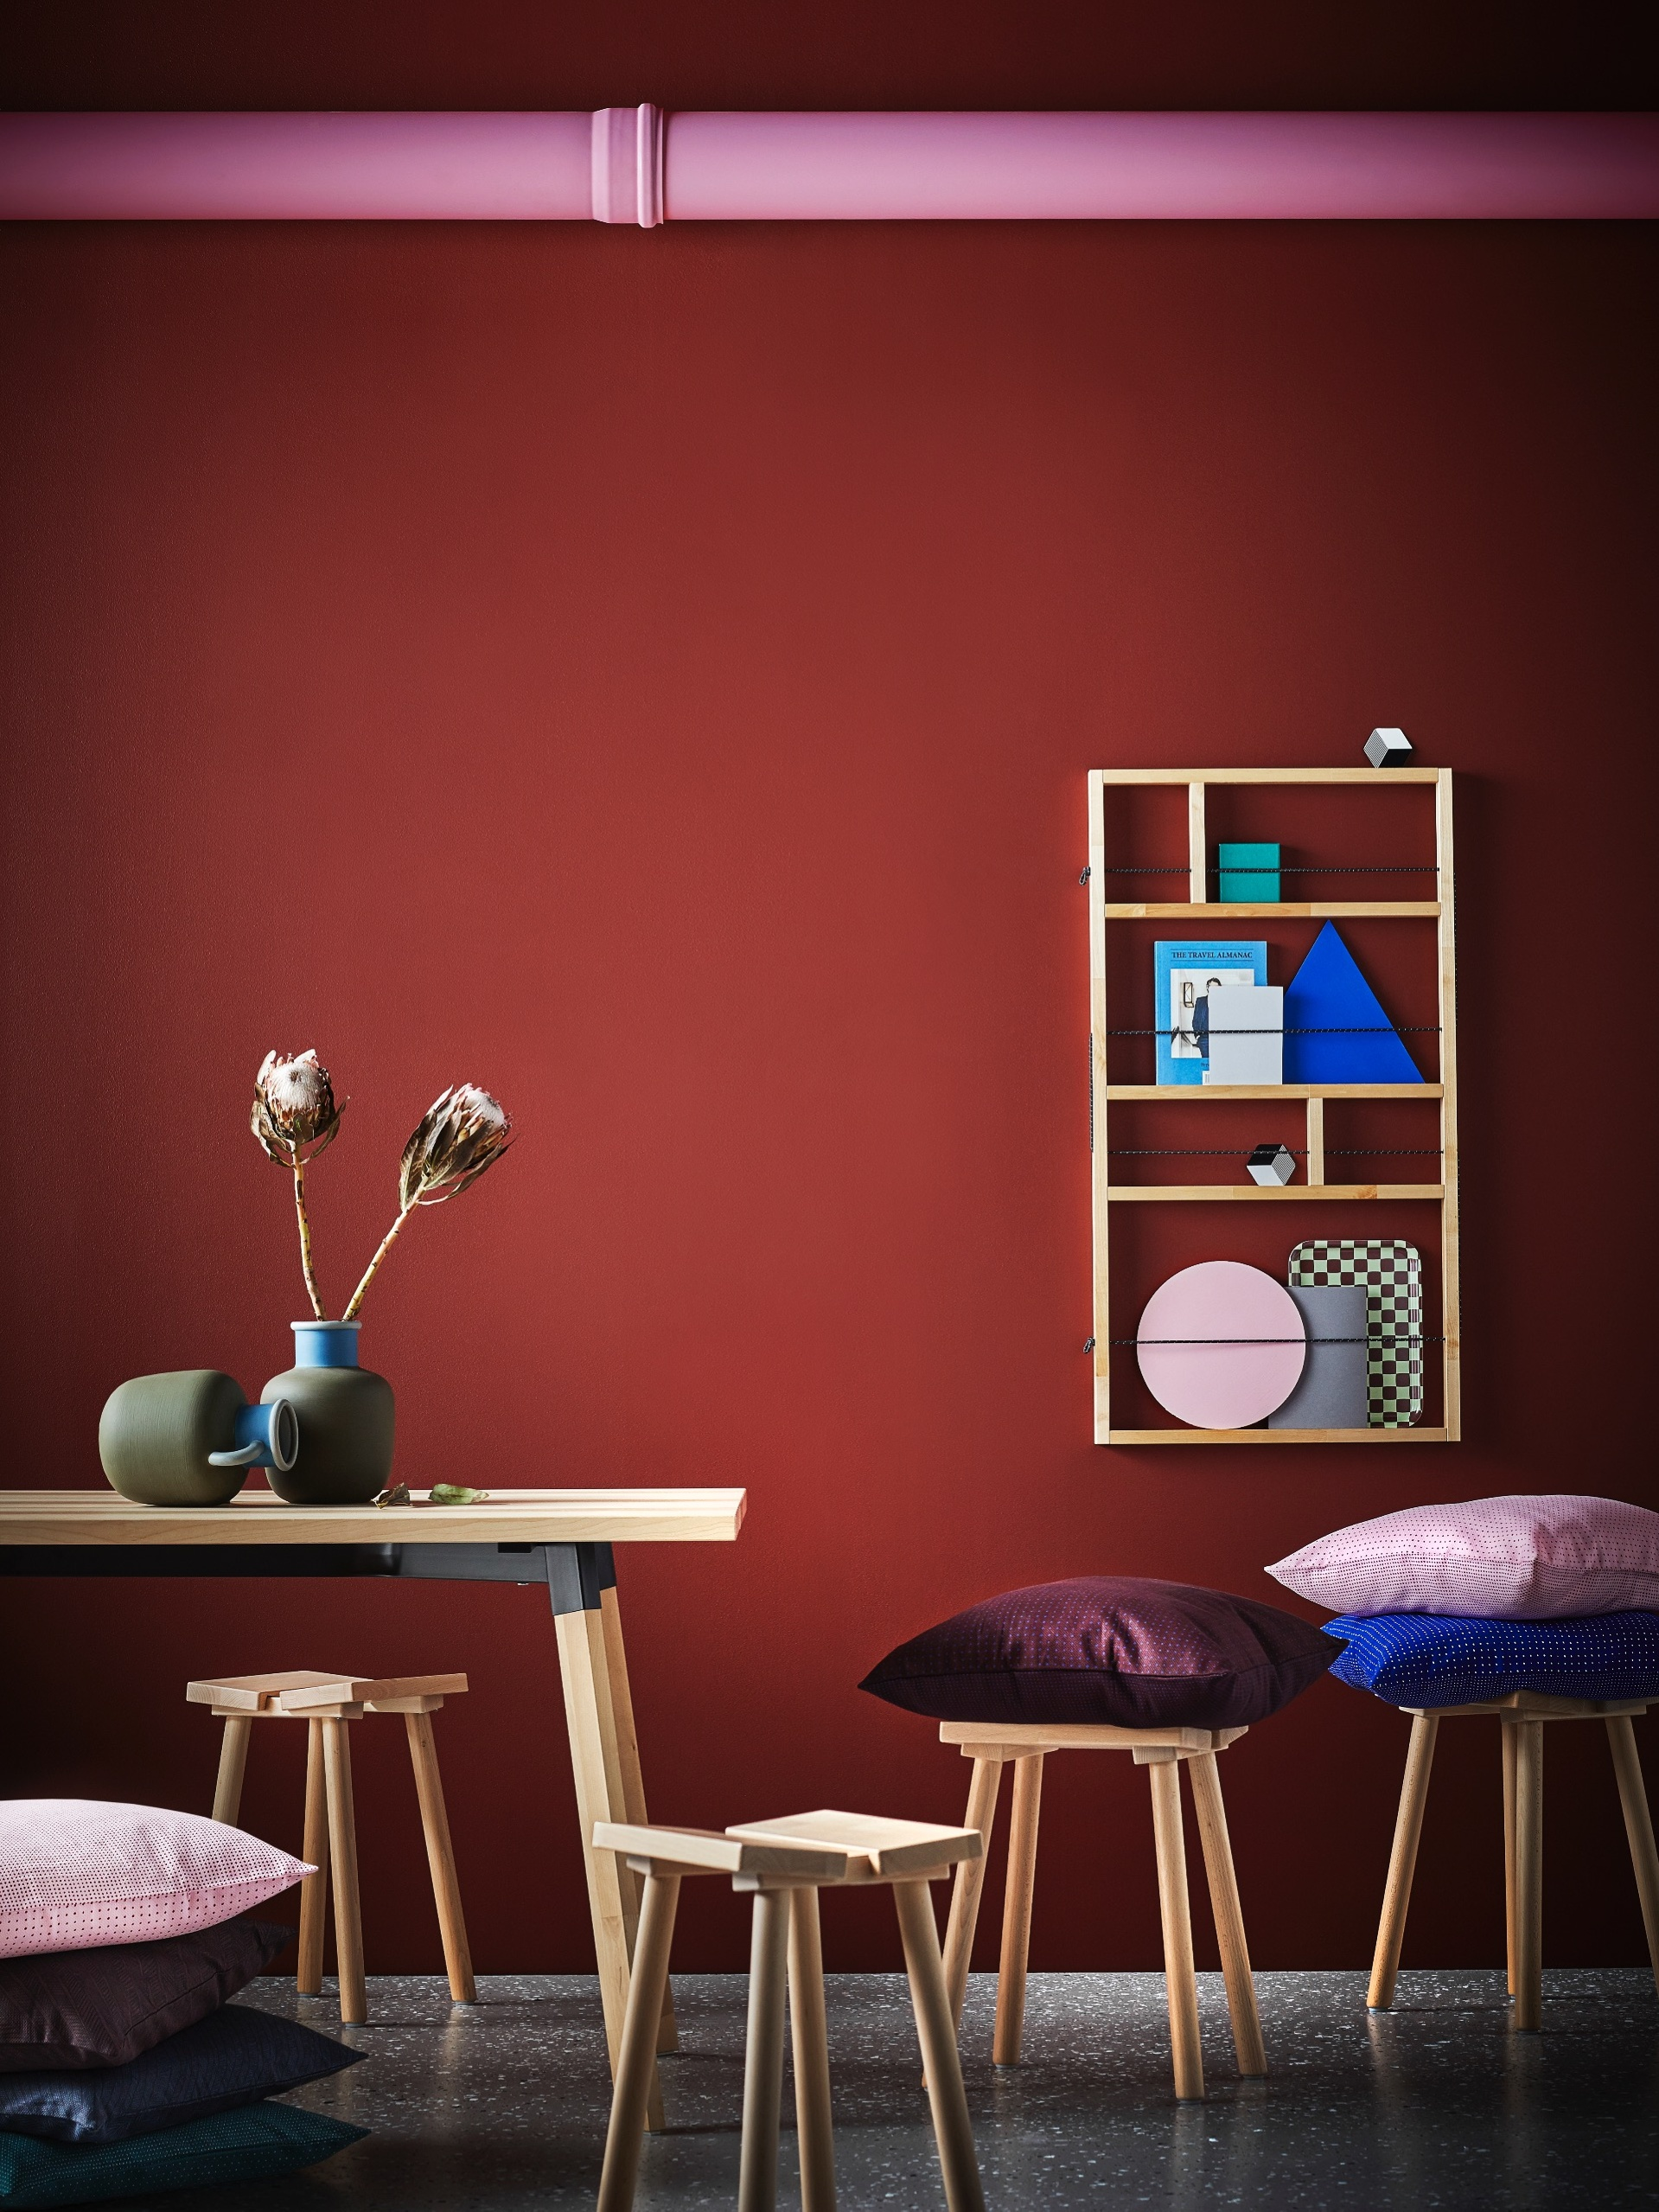 Ikea Ypperlig Fynn Freyschmidt Product Design Hay X Ikea Ypperlig Collection